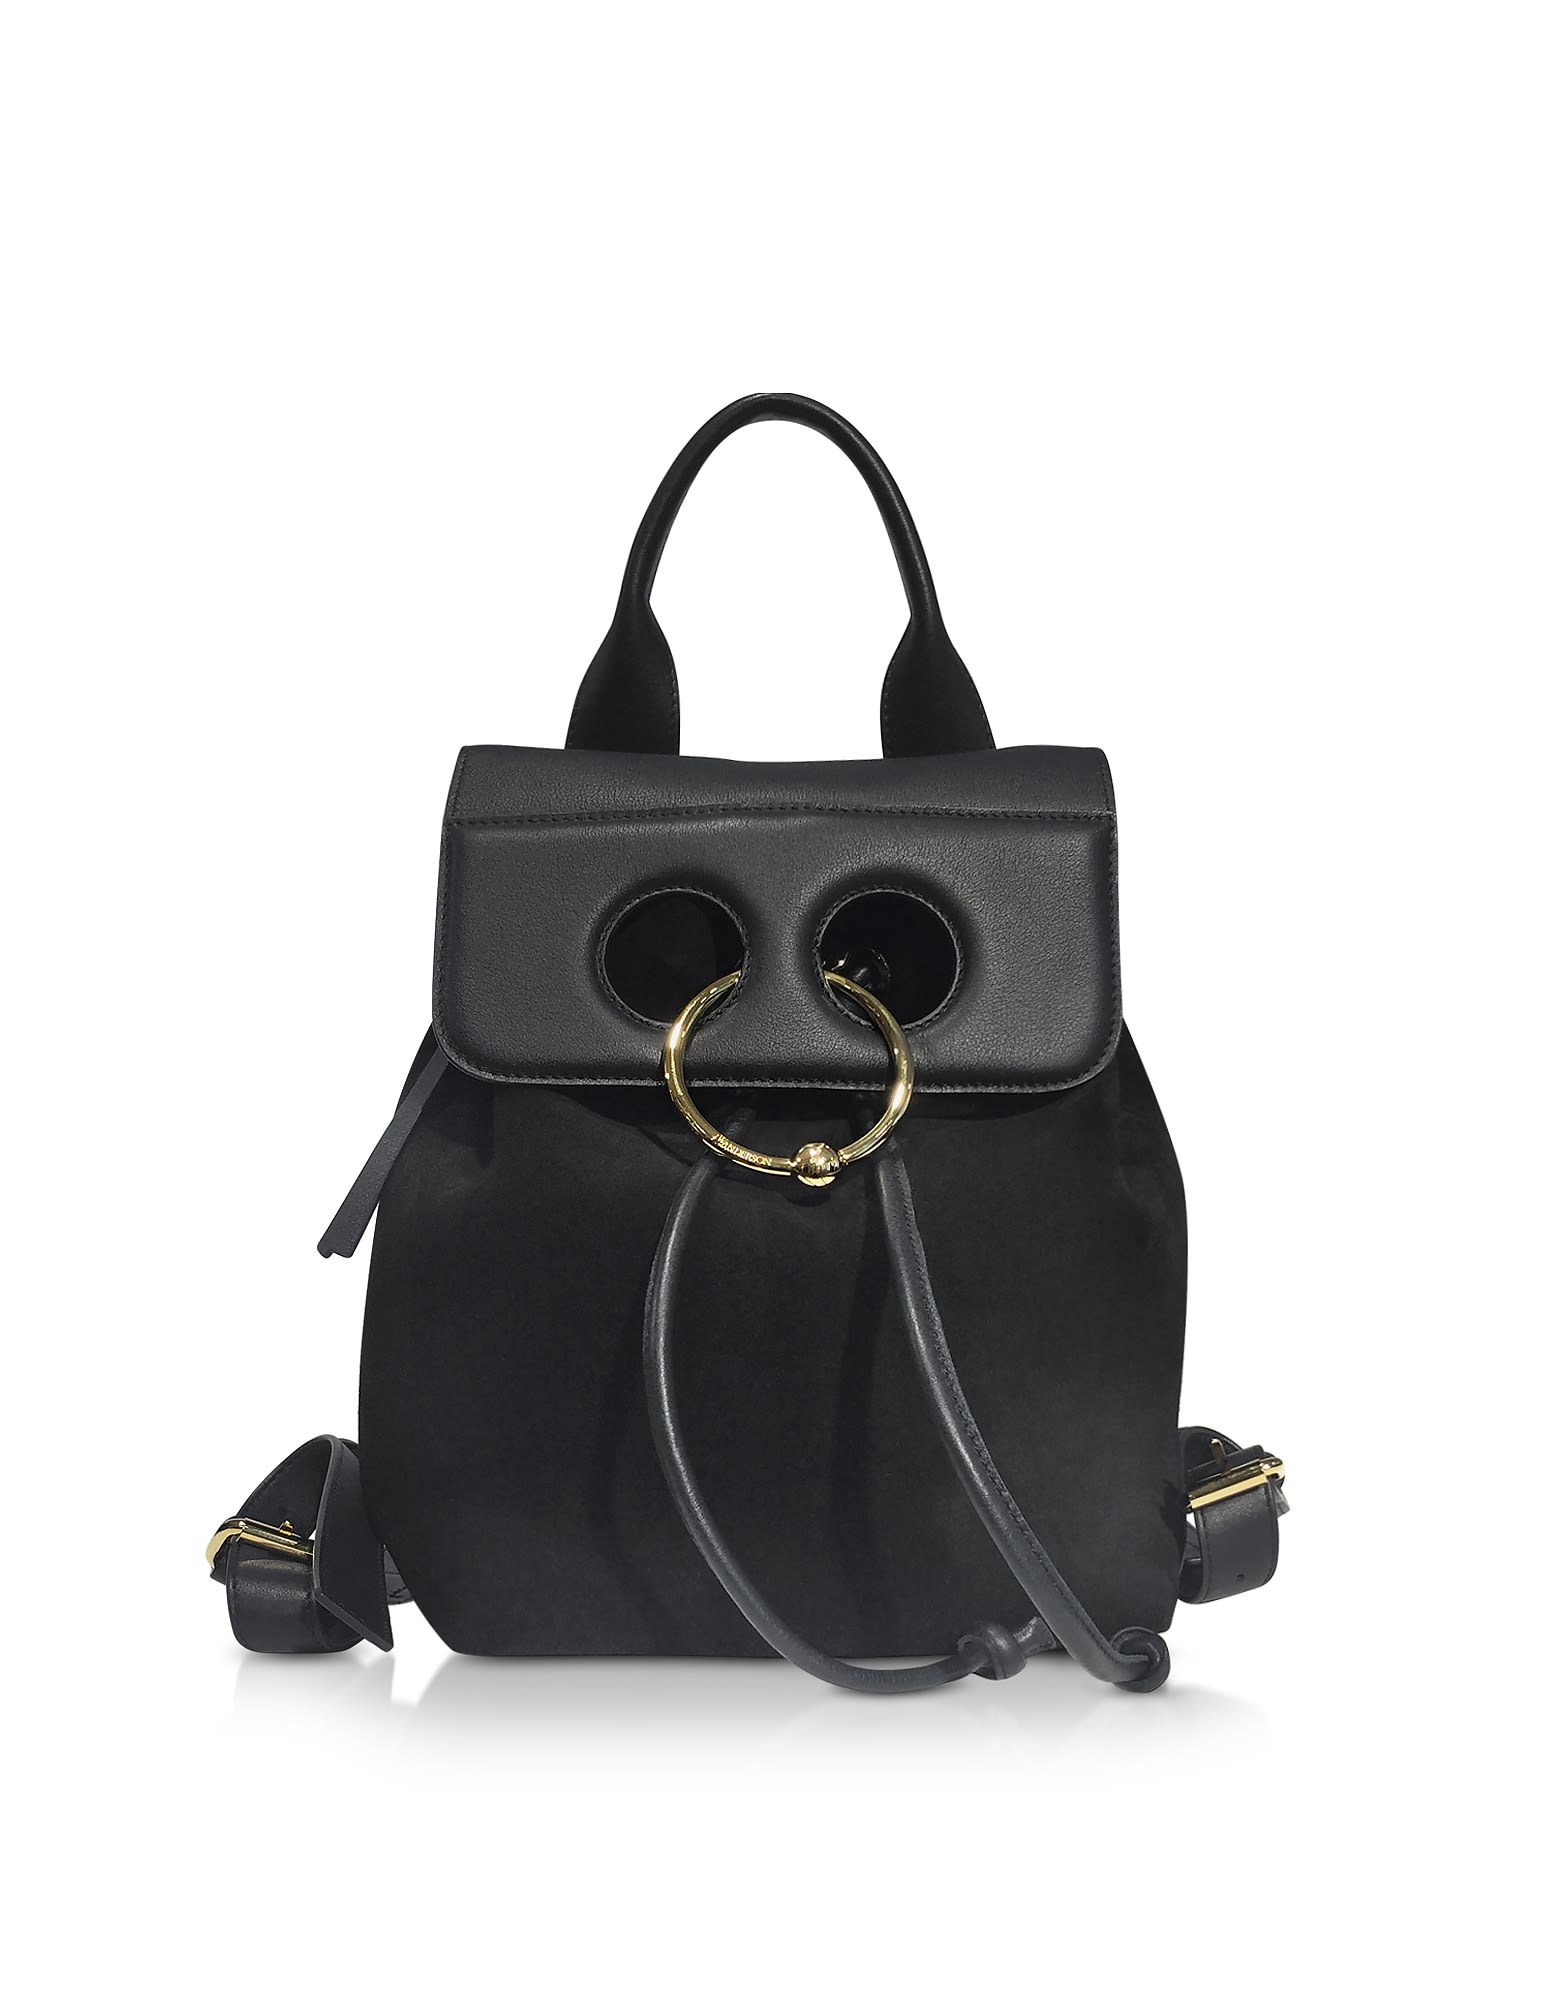 J.W.ANDERSON JW ANDERSON BLACK SUEDE AND LEATHER MINI PIERCE BACKPACK